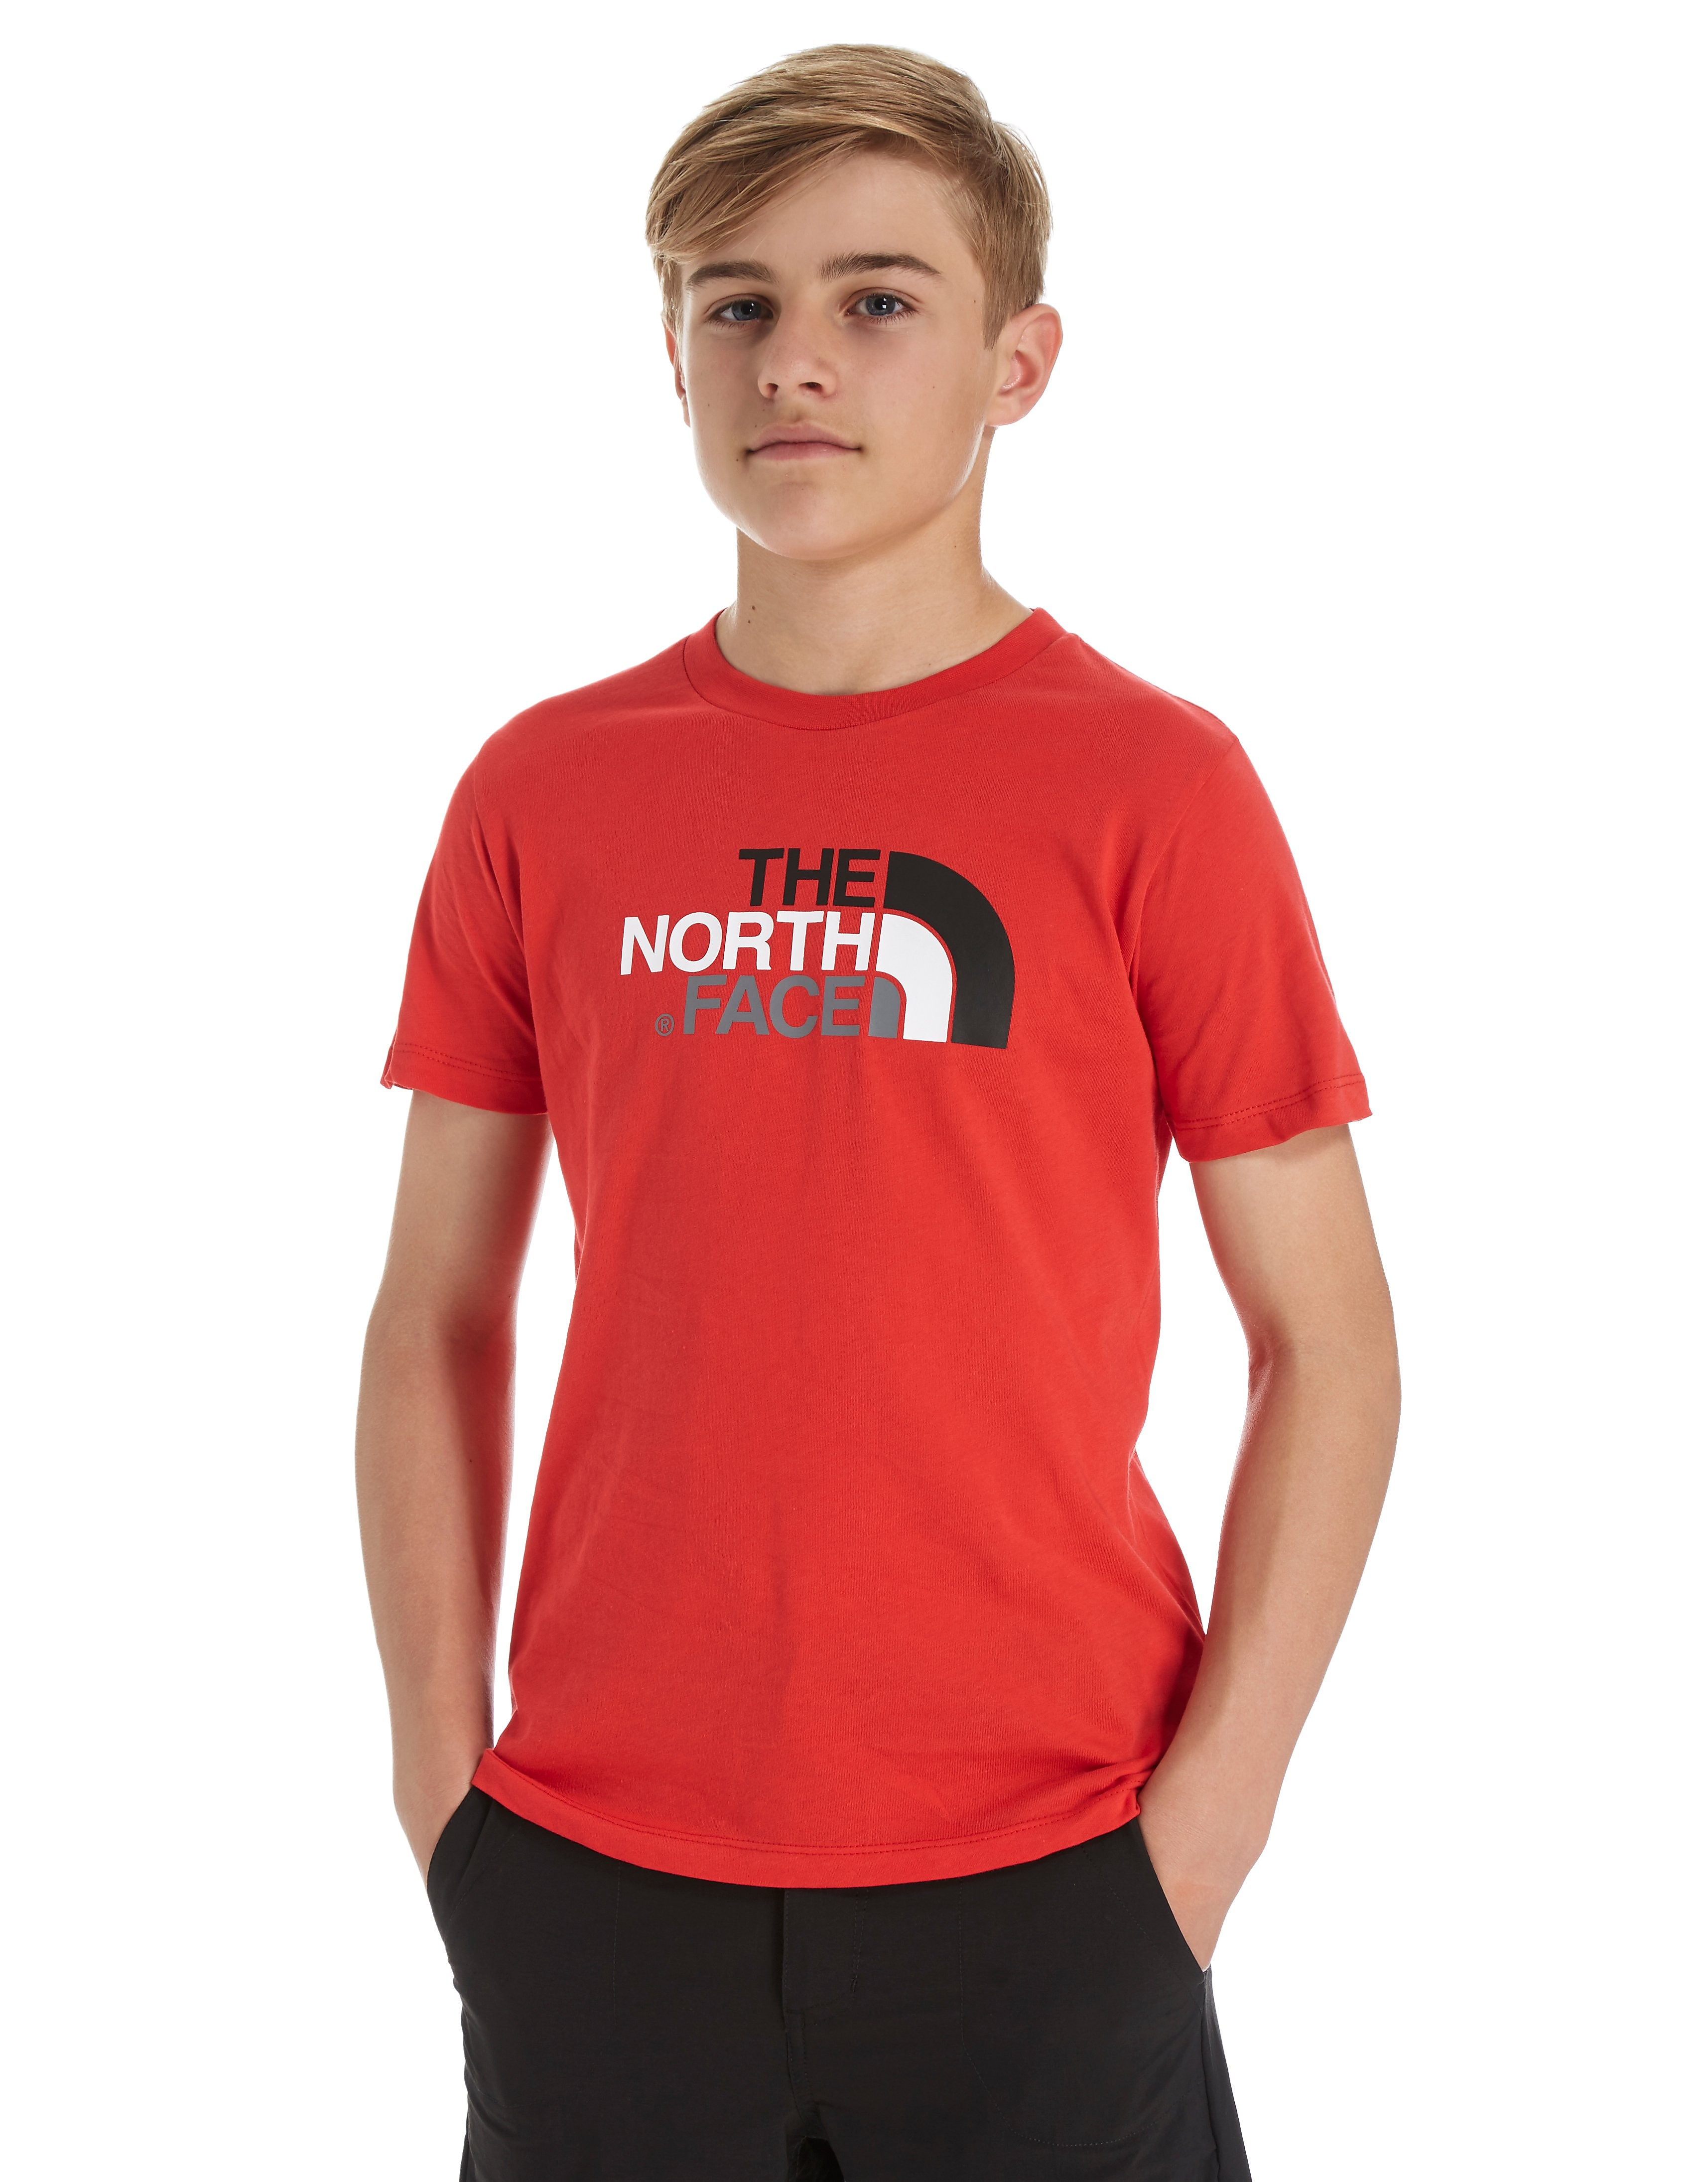 The North Face T-shirt Easy Junior